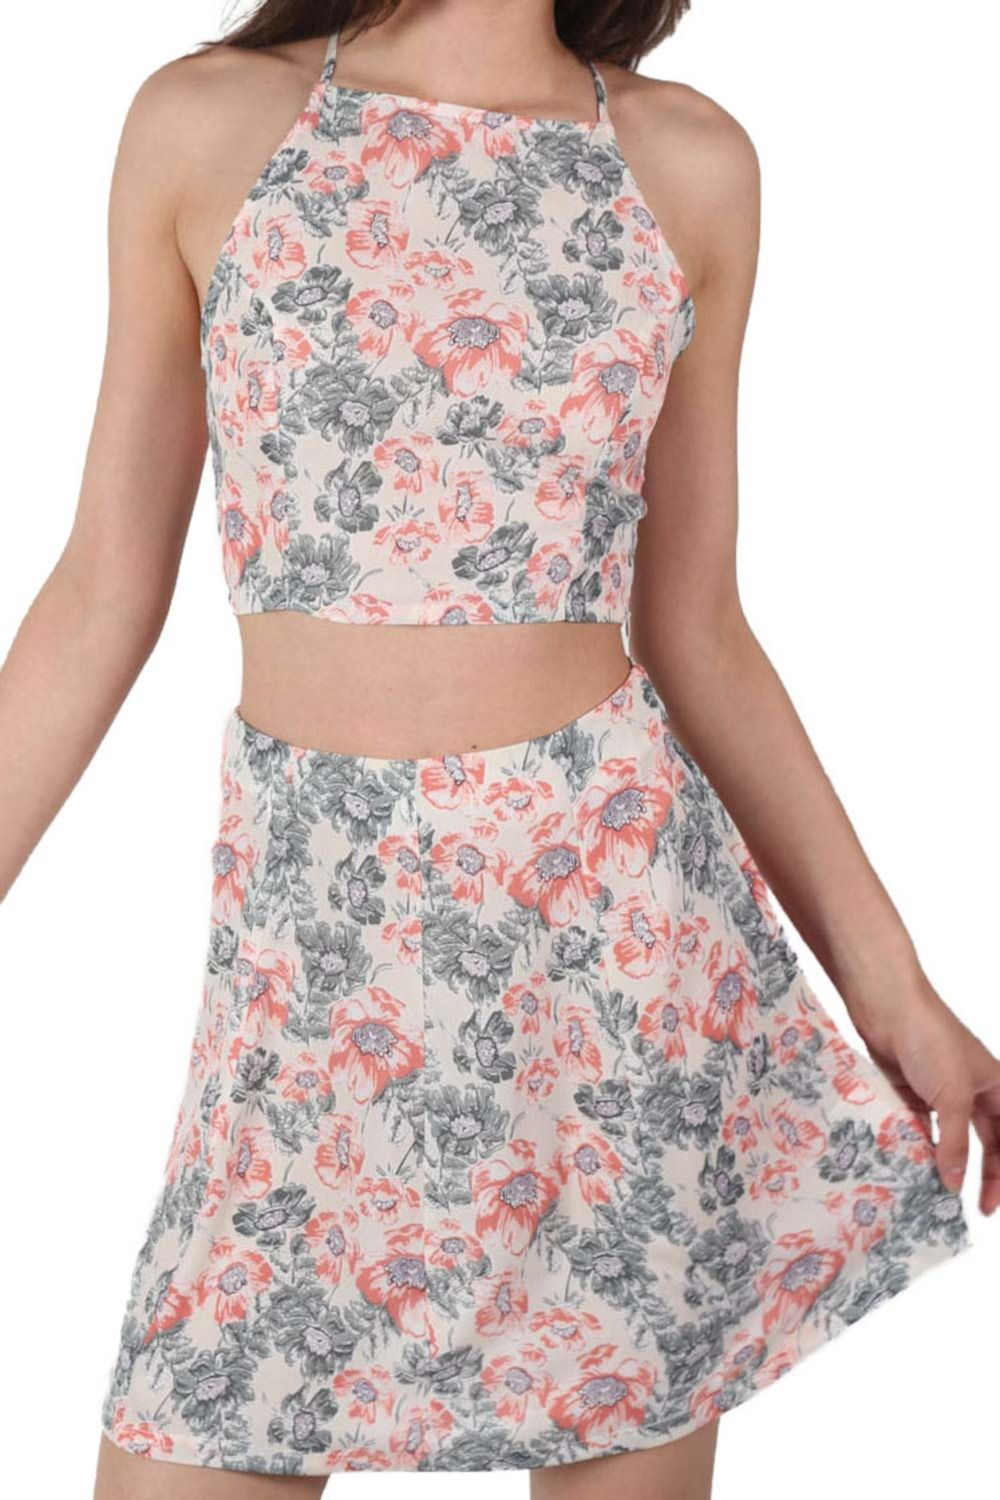 Floral Print Crop Top in Pale Pink